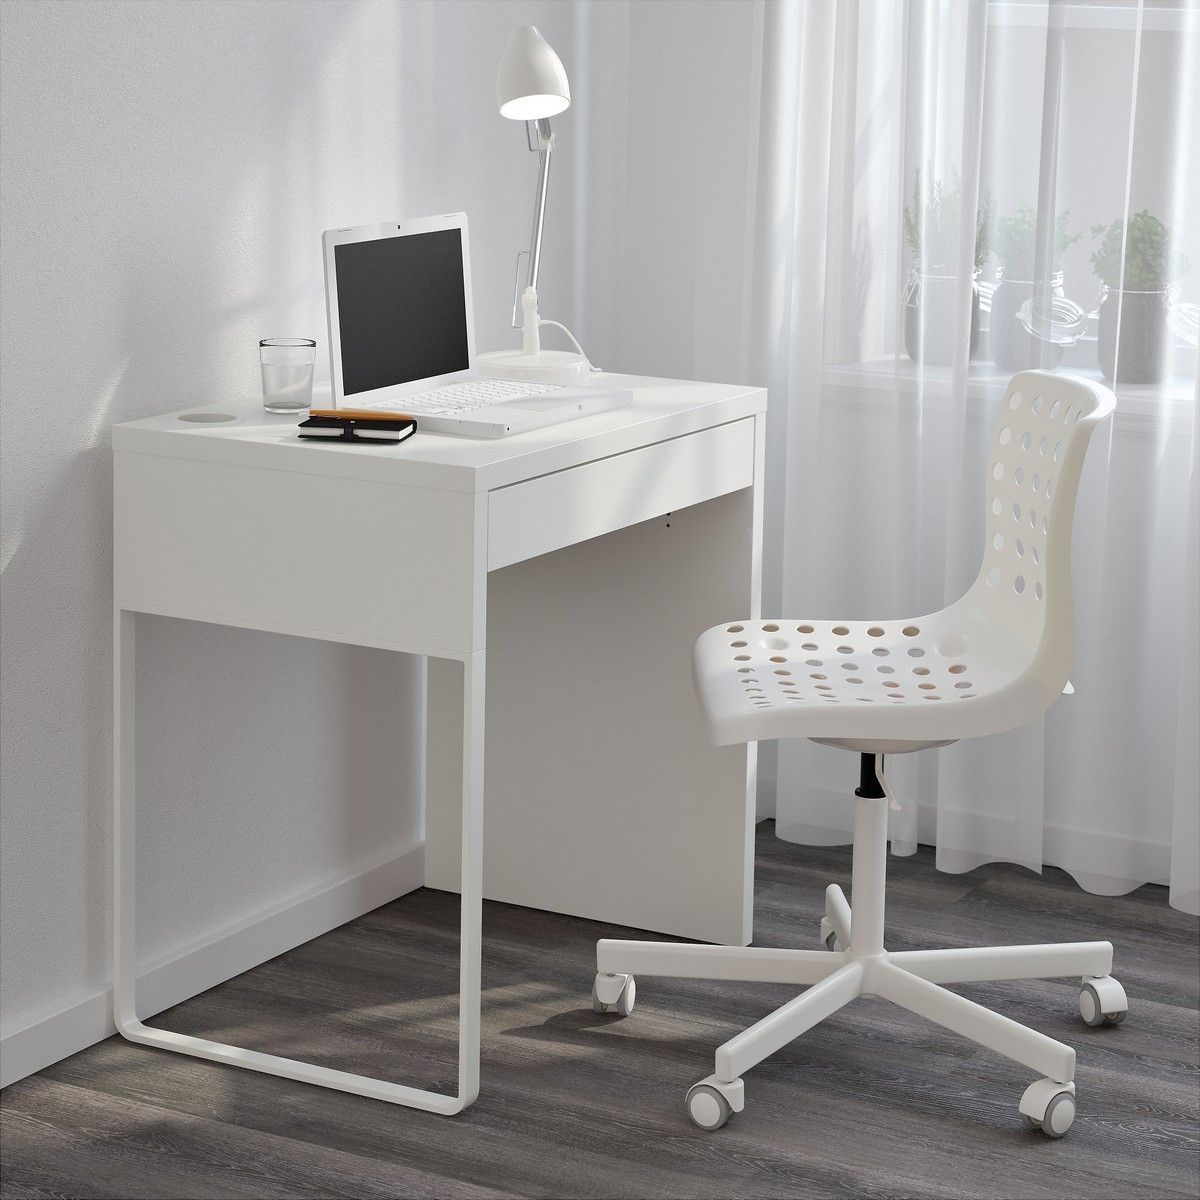 Desk Ideas Perfect For Small Spaces Desks For Small Spaces Ikea White Desk White Desk Bedroom